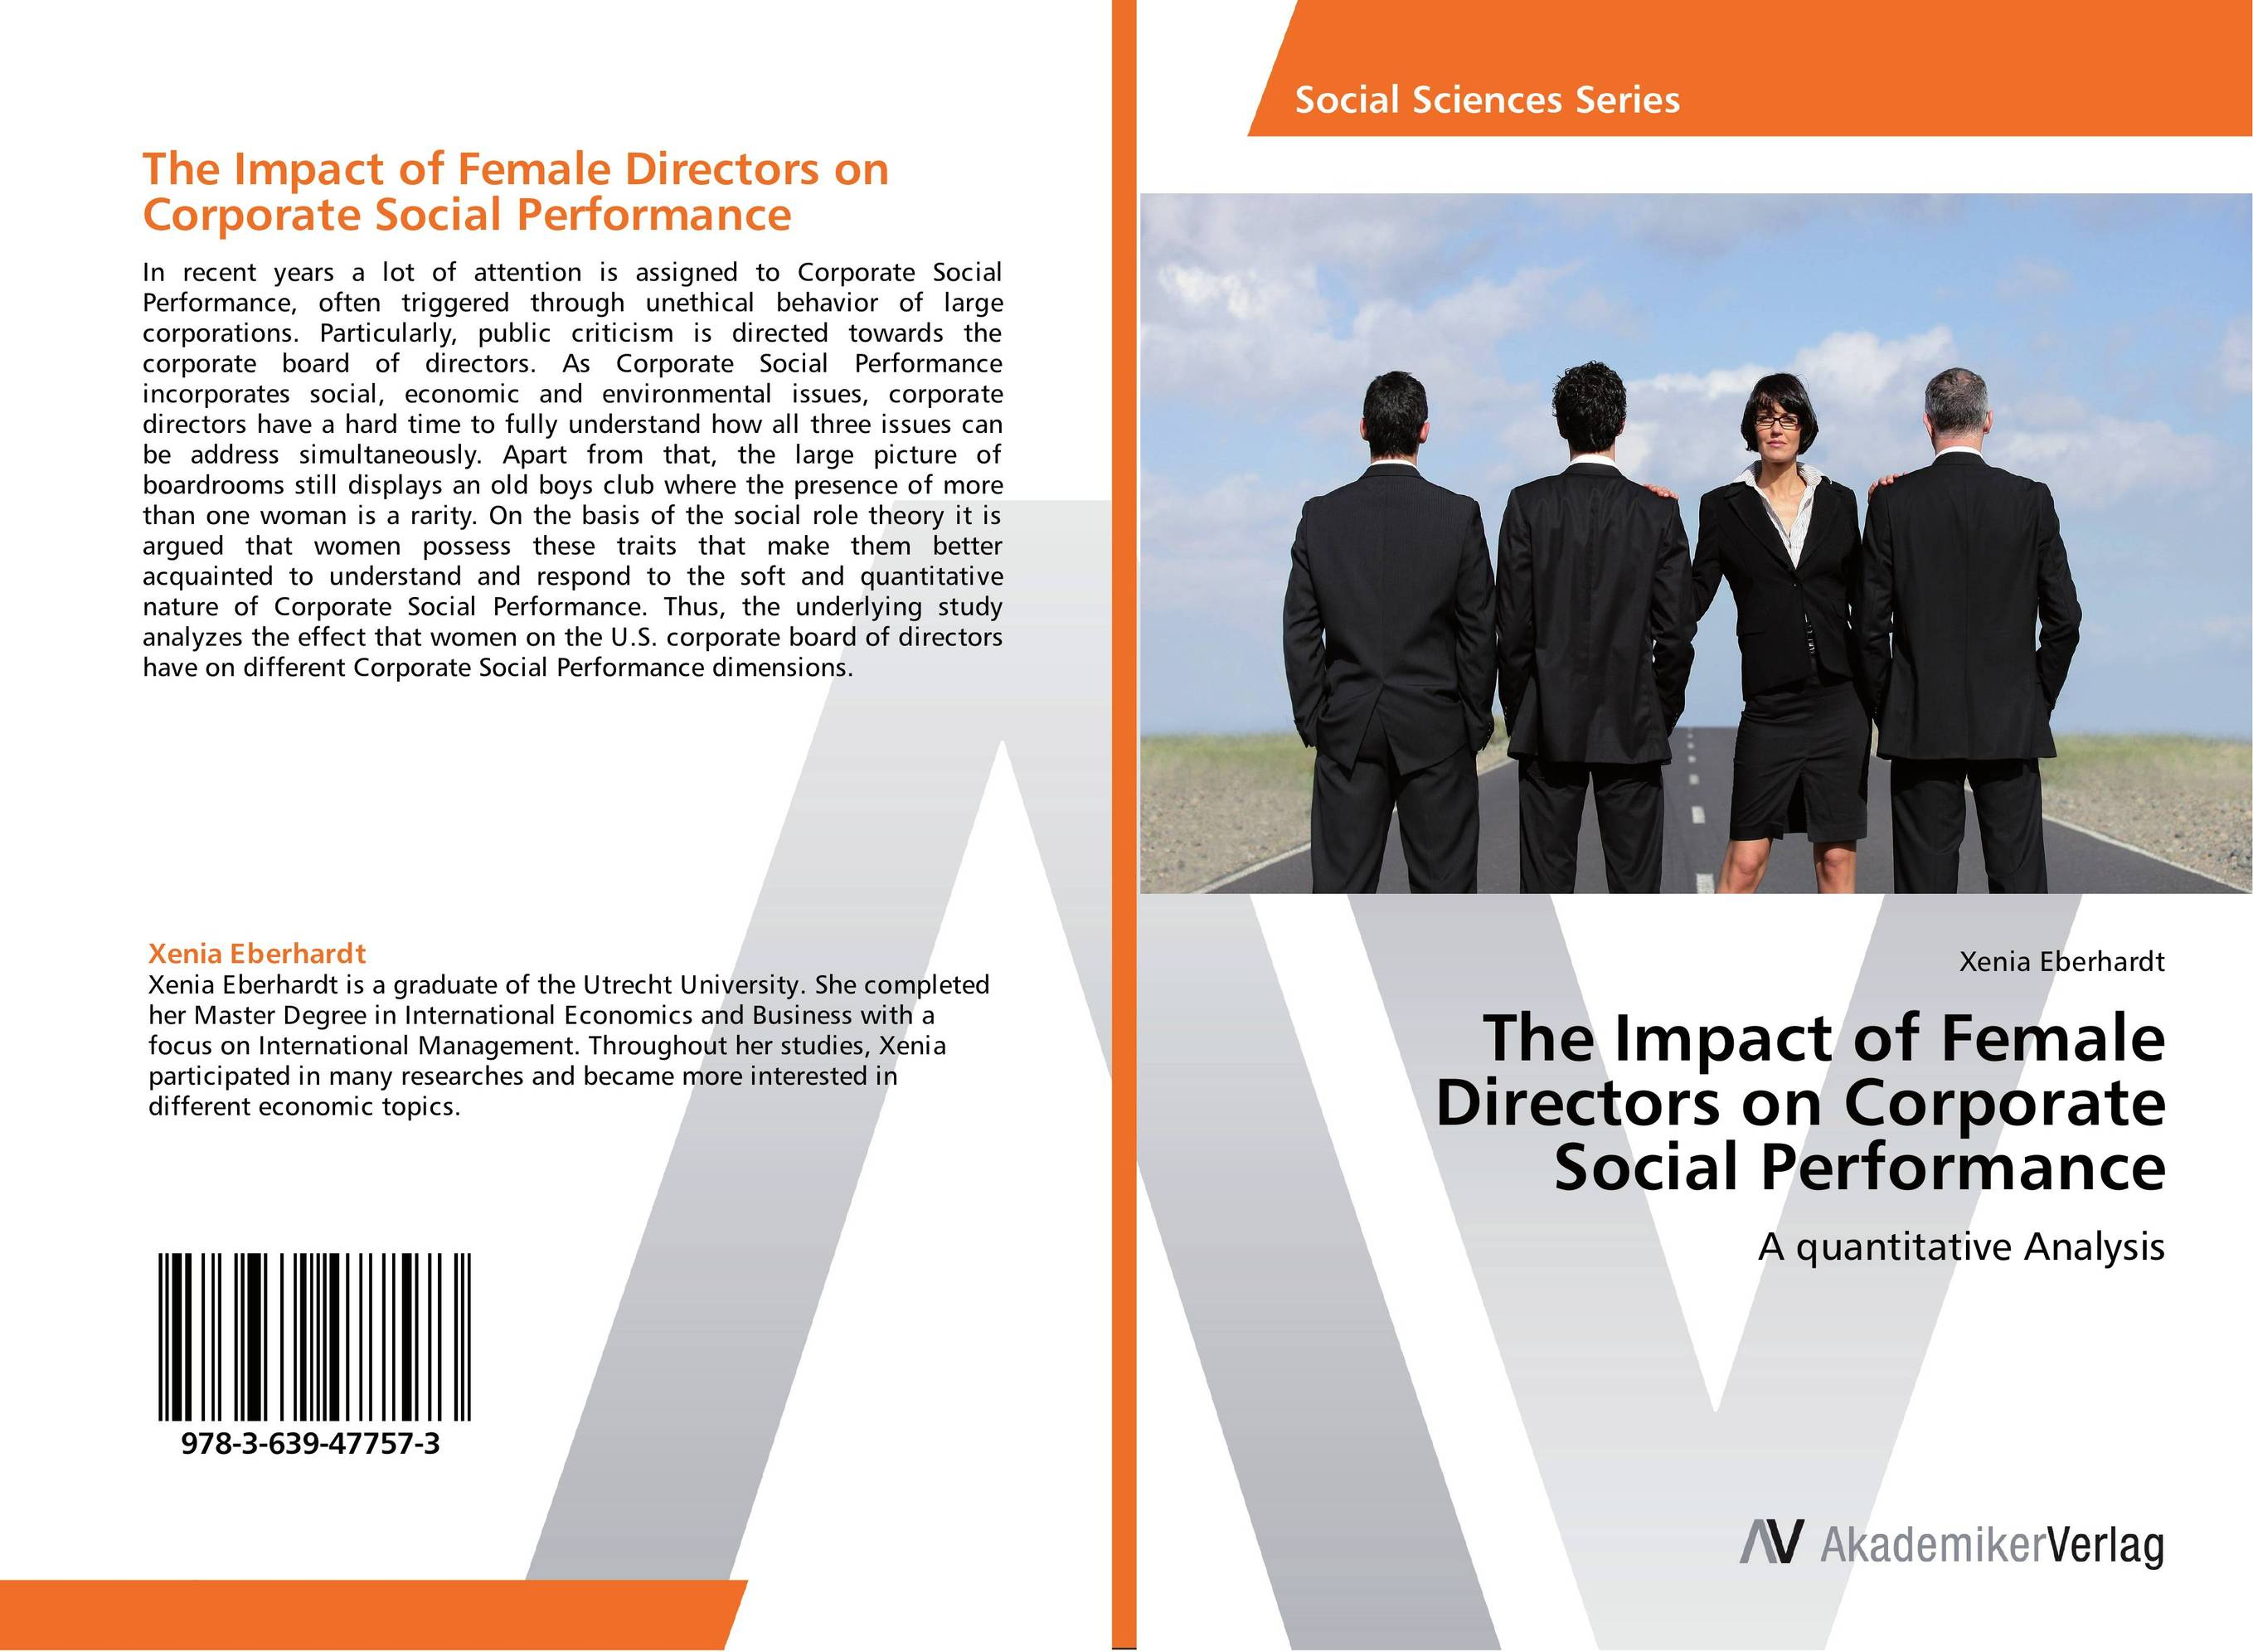 The Impact of Female Directors on Corporate Social Performance dan zheng the impact of employees perception of corporate social responsibility